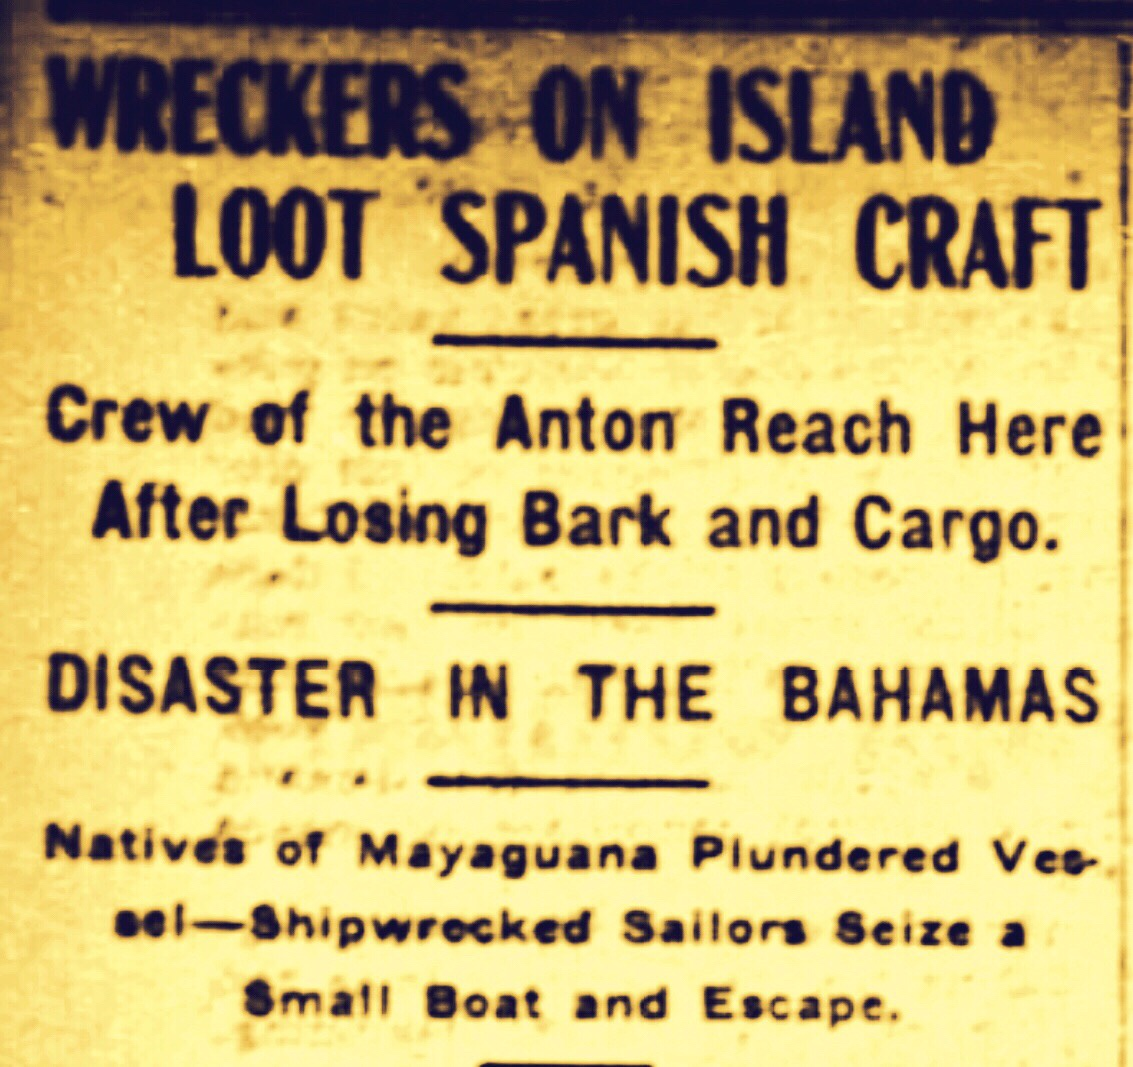 Spaniards Held Prisoners on Mayaguana 1905